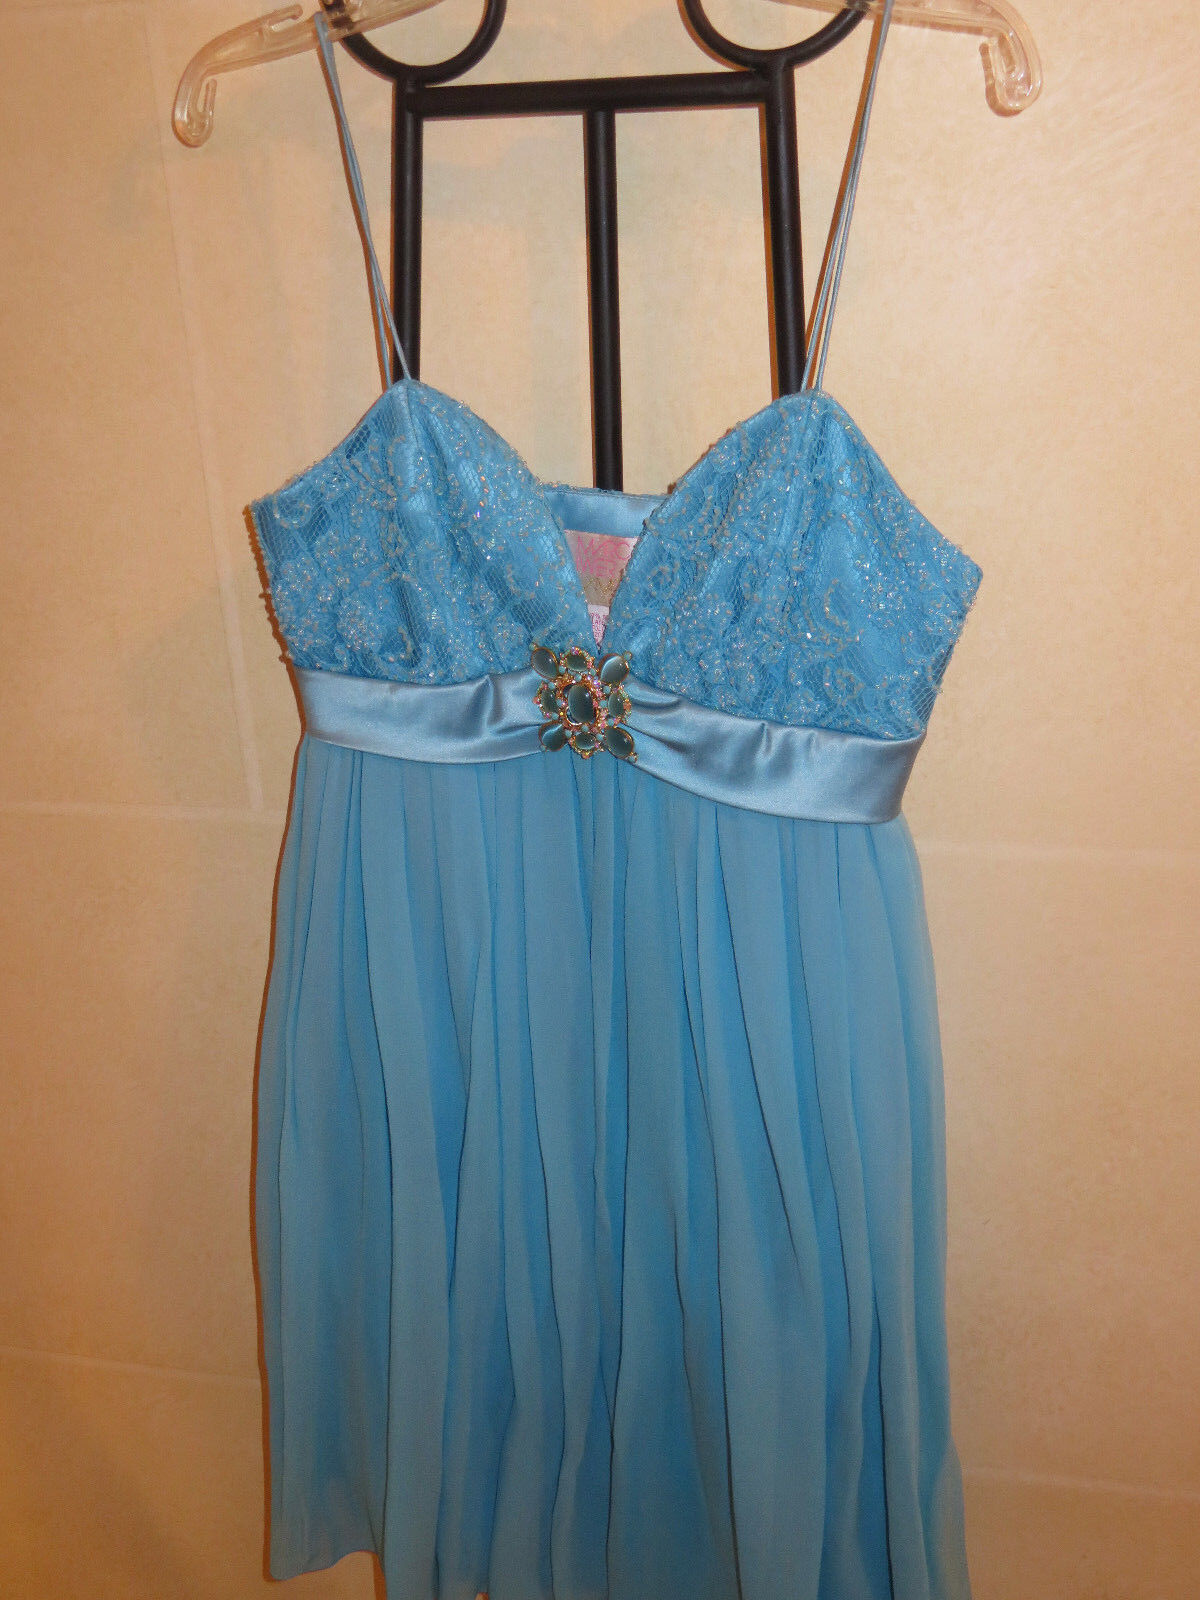 Marc Bouwer Glamit 100% Silk Turquoise bluee Dress, Size 0, BRAND NEW